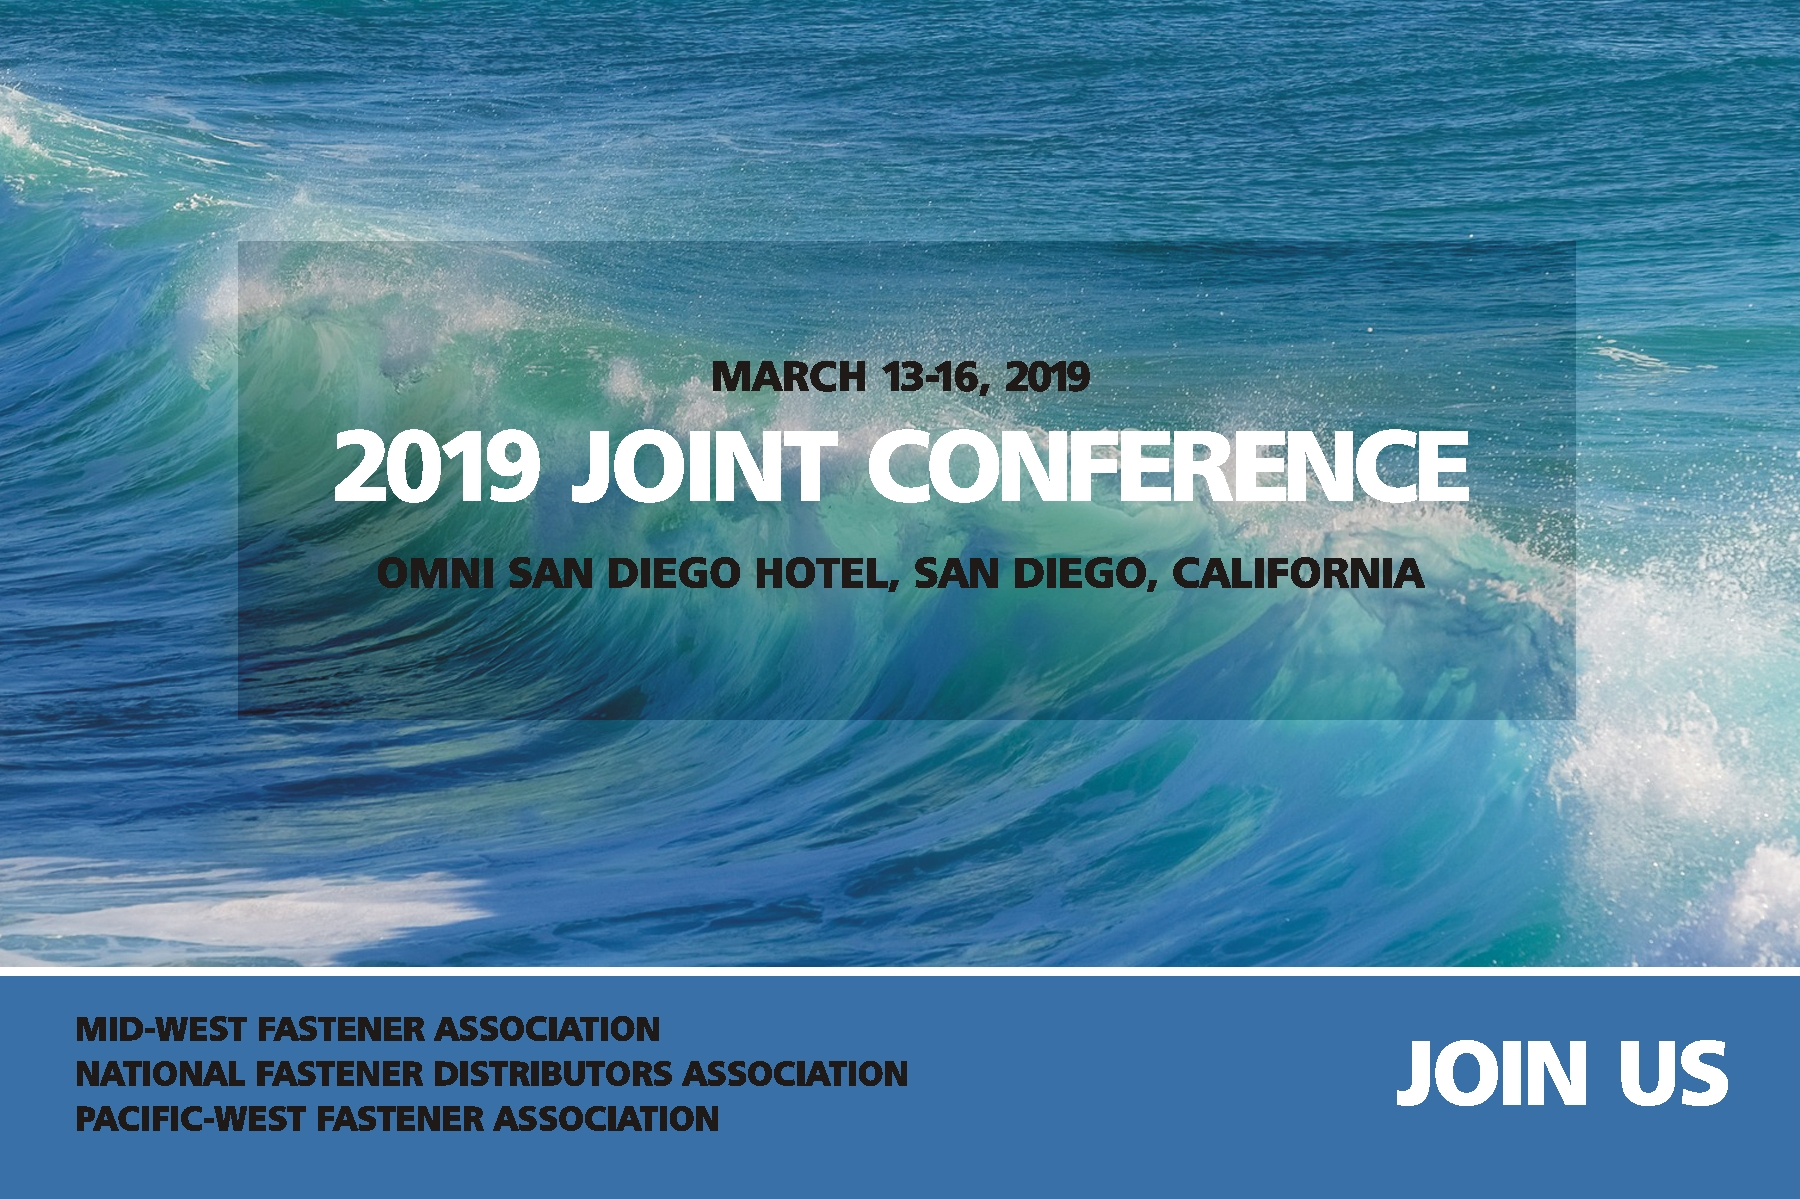 2019 joint conference attendees